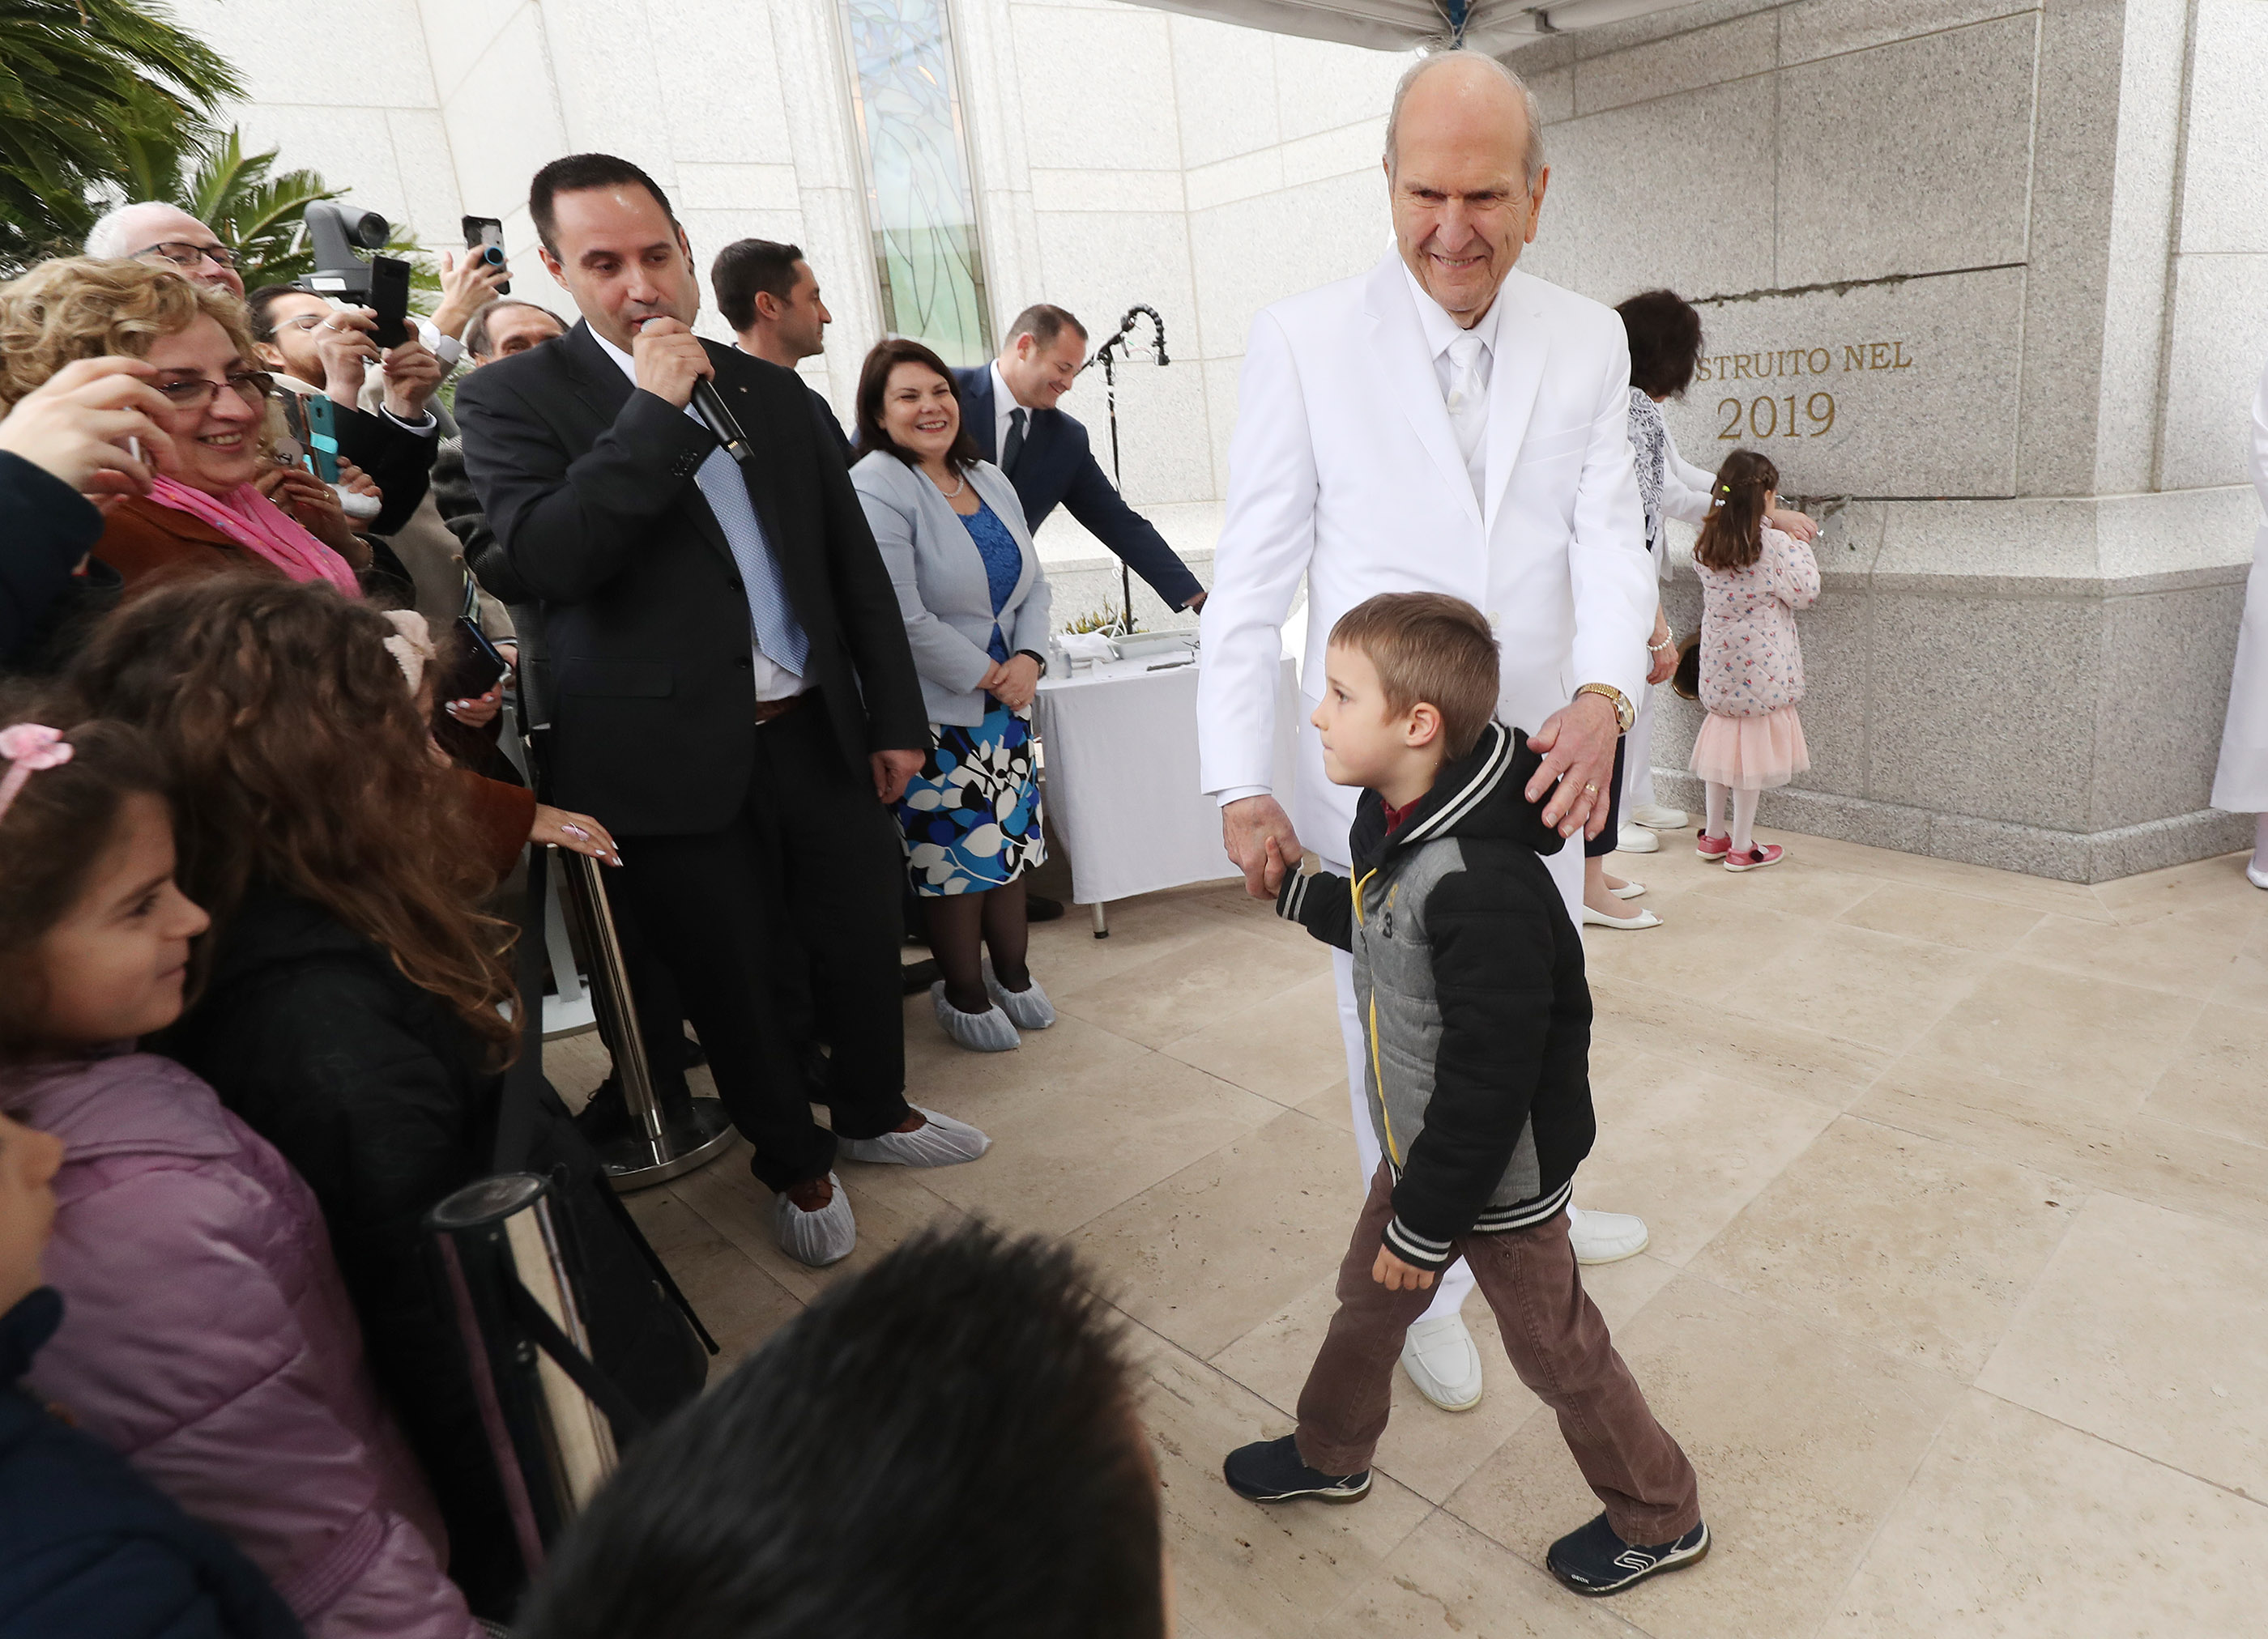 President Russell M. Nelson of The Church of Jesus Christ of Latter-day Saints calls on Scott Cordani during the cornerstone ceremony for the dedication of the Rome Italy Temple of The Church of Jesus Christ of Latter-day Saints in Rome, Italy, on Sunday, March 10, 2019.